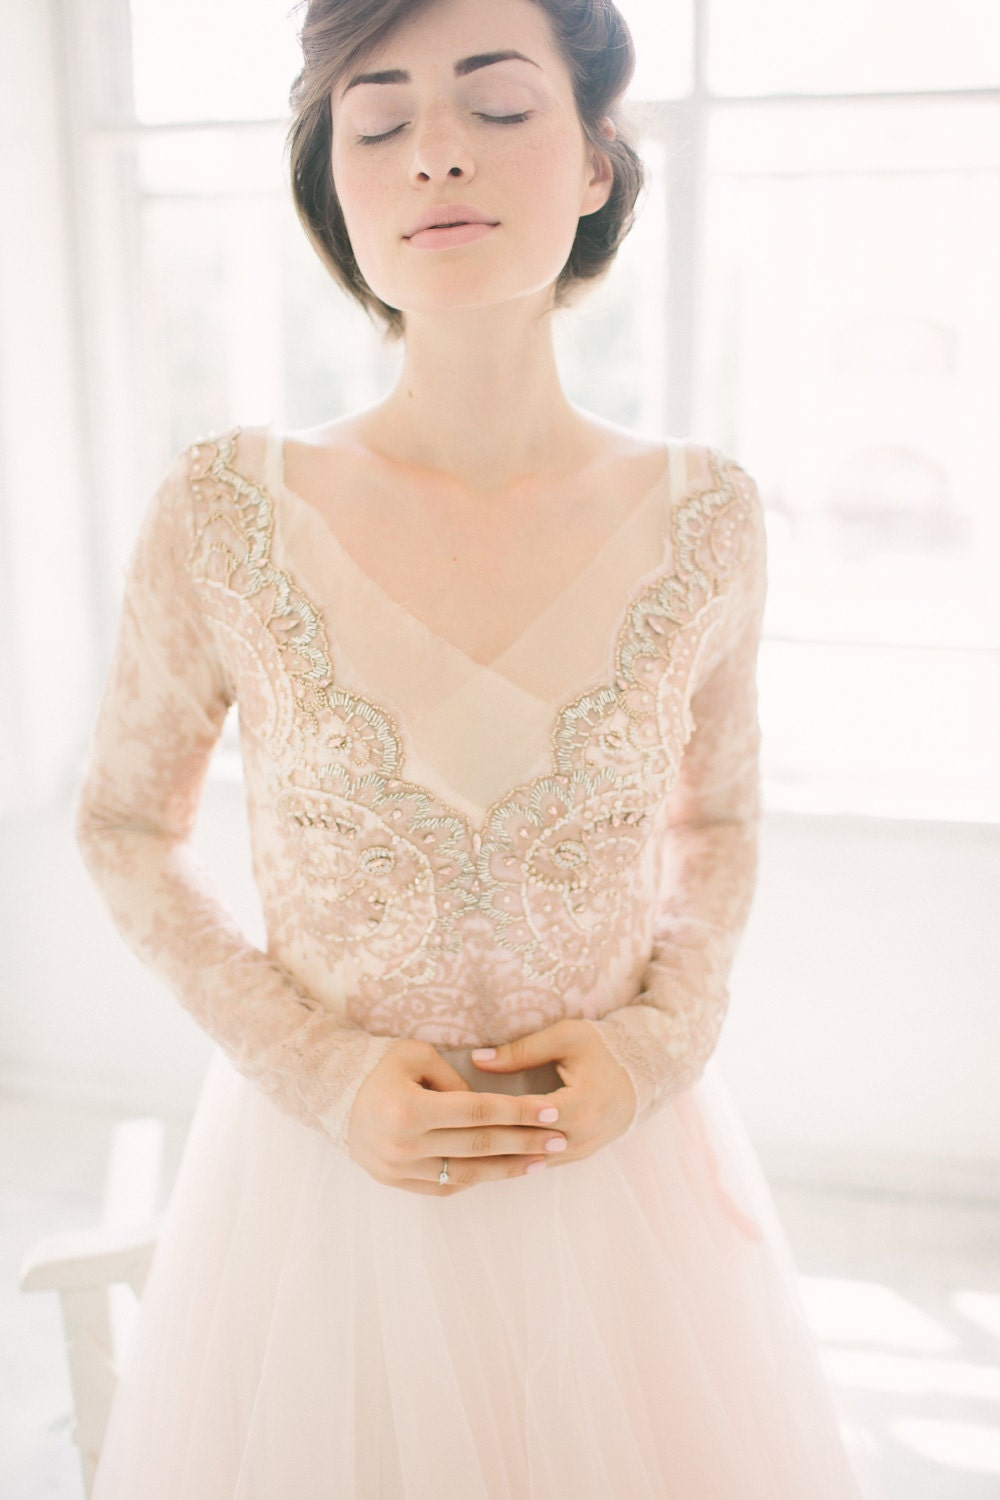 Winter Wedding Dress.Tulle Wedding Gown Orchidee Blush Wedding Dress Lace Bridal Gown Long Sleeve Dress Winter Wedding Dress A Line Bridal Dress